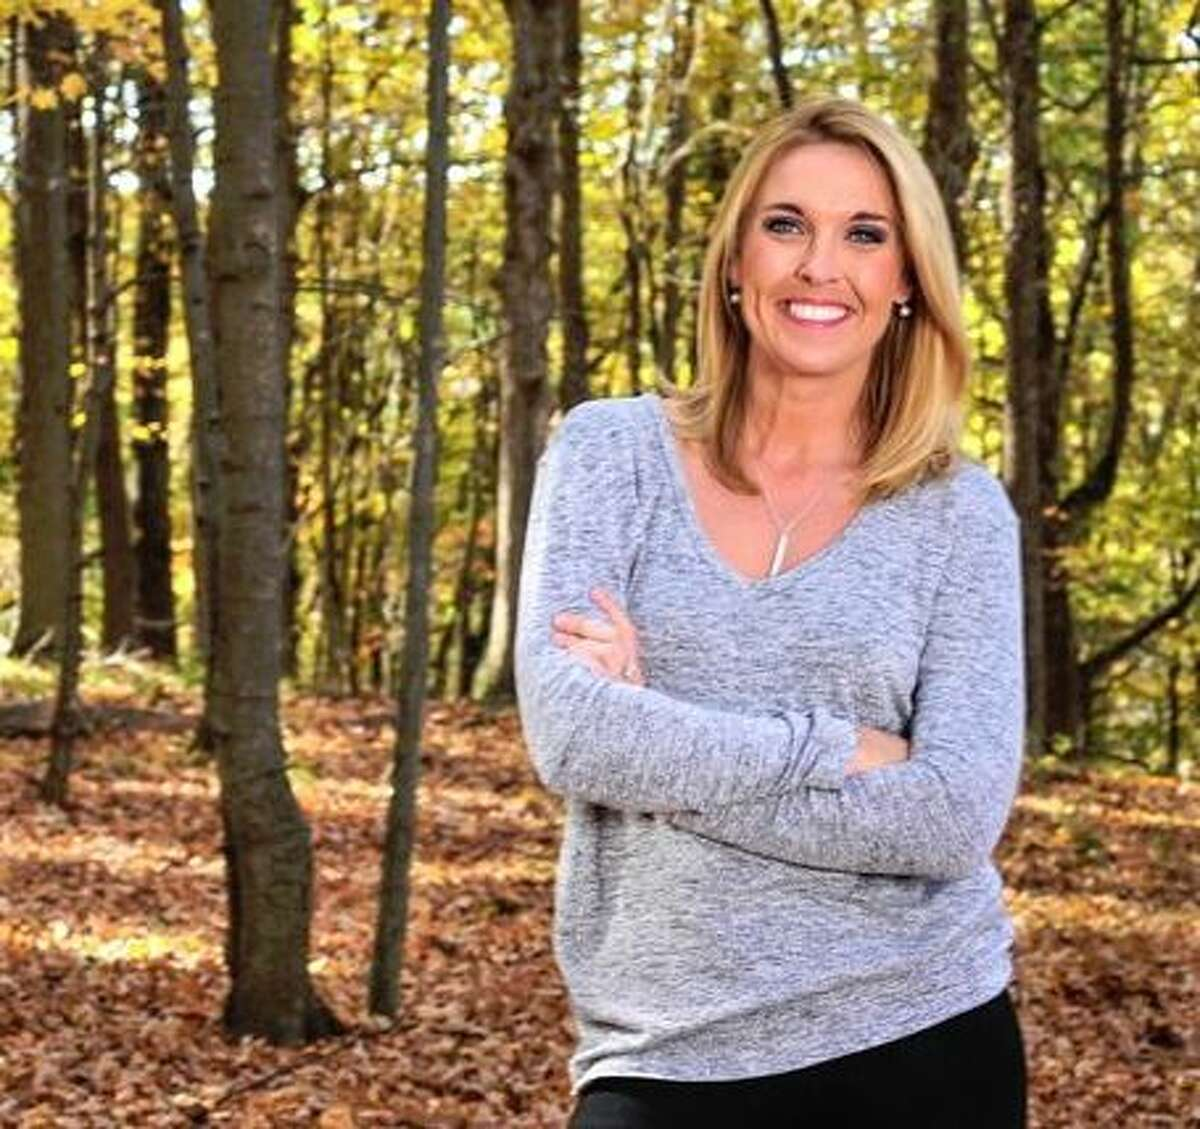 Click through the slideshow for 20 things you may not know about Julia Dunn, anchor for the local morning show on CBS6.